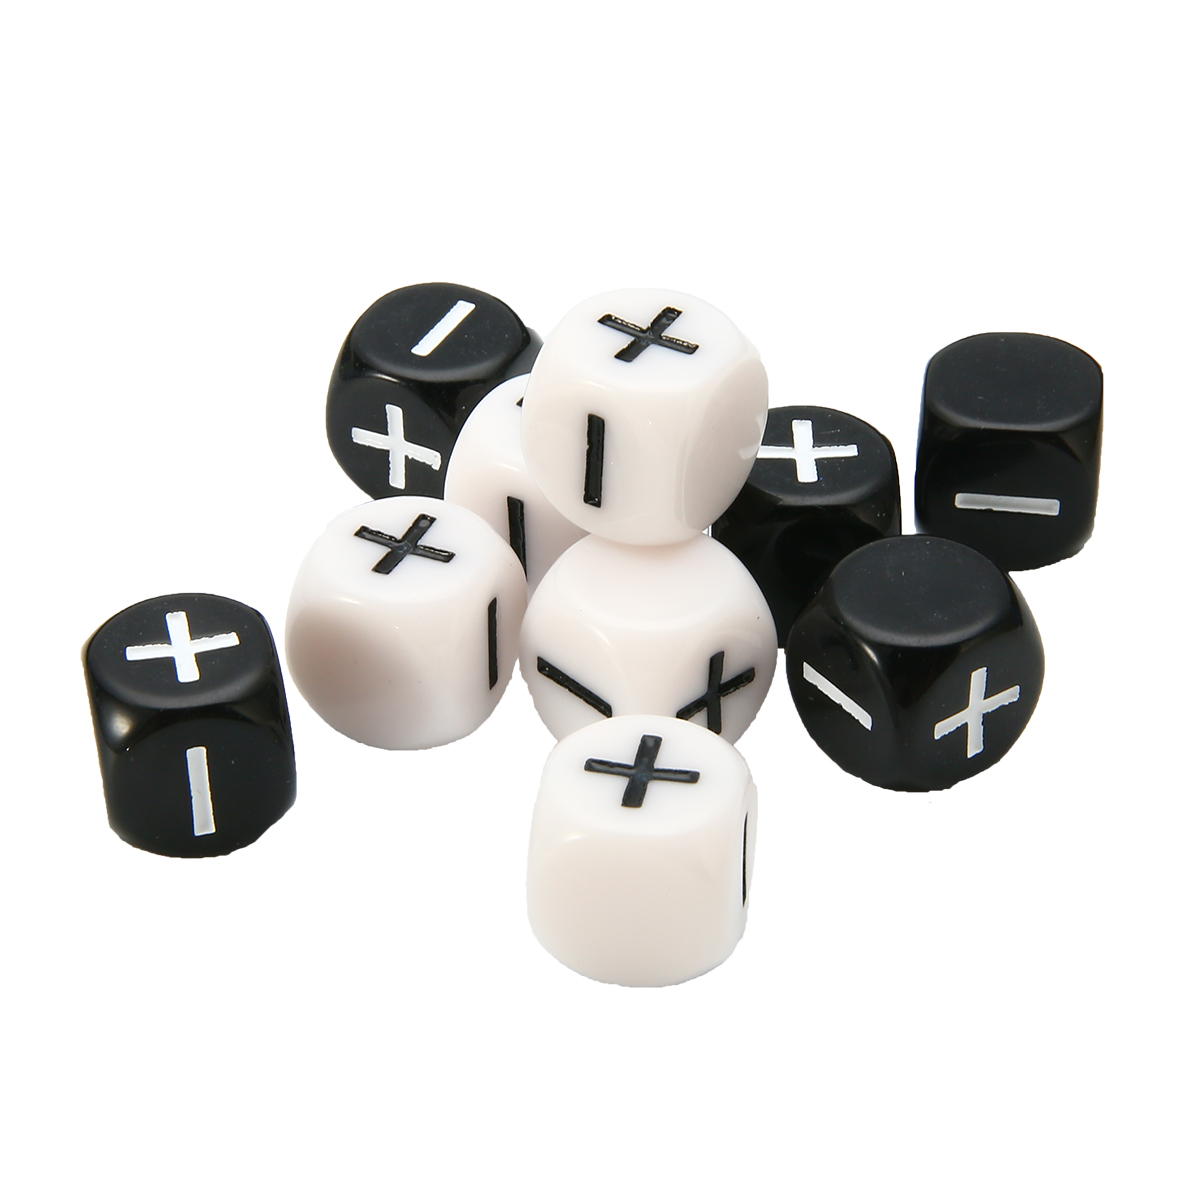 10Pcs Black + White 6-sided Dice Minus Plus 16mm For Party Bar School Outdoor Family Table Board Funny RPG Games Accessory